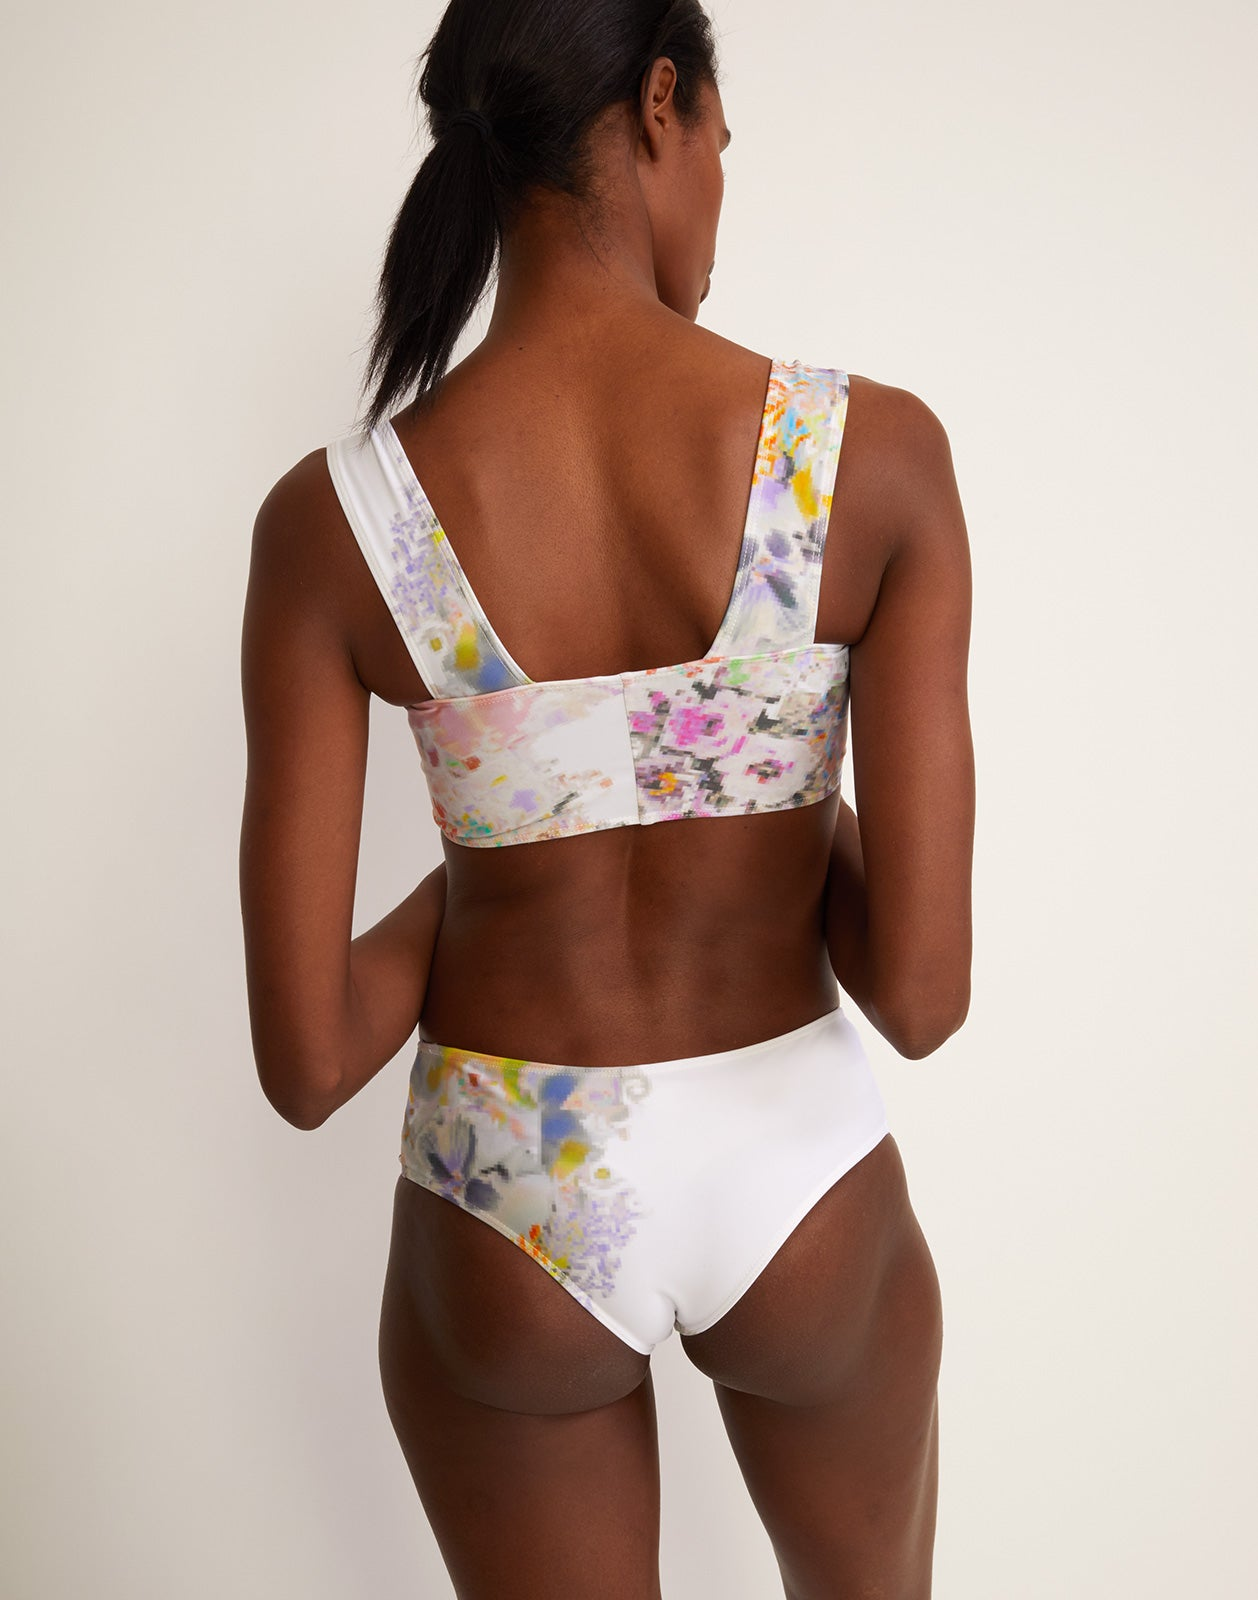 Back view of Venus pastel floral two piece swimsuit.